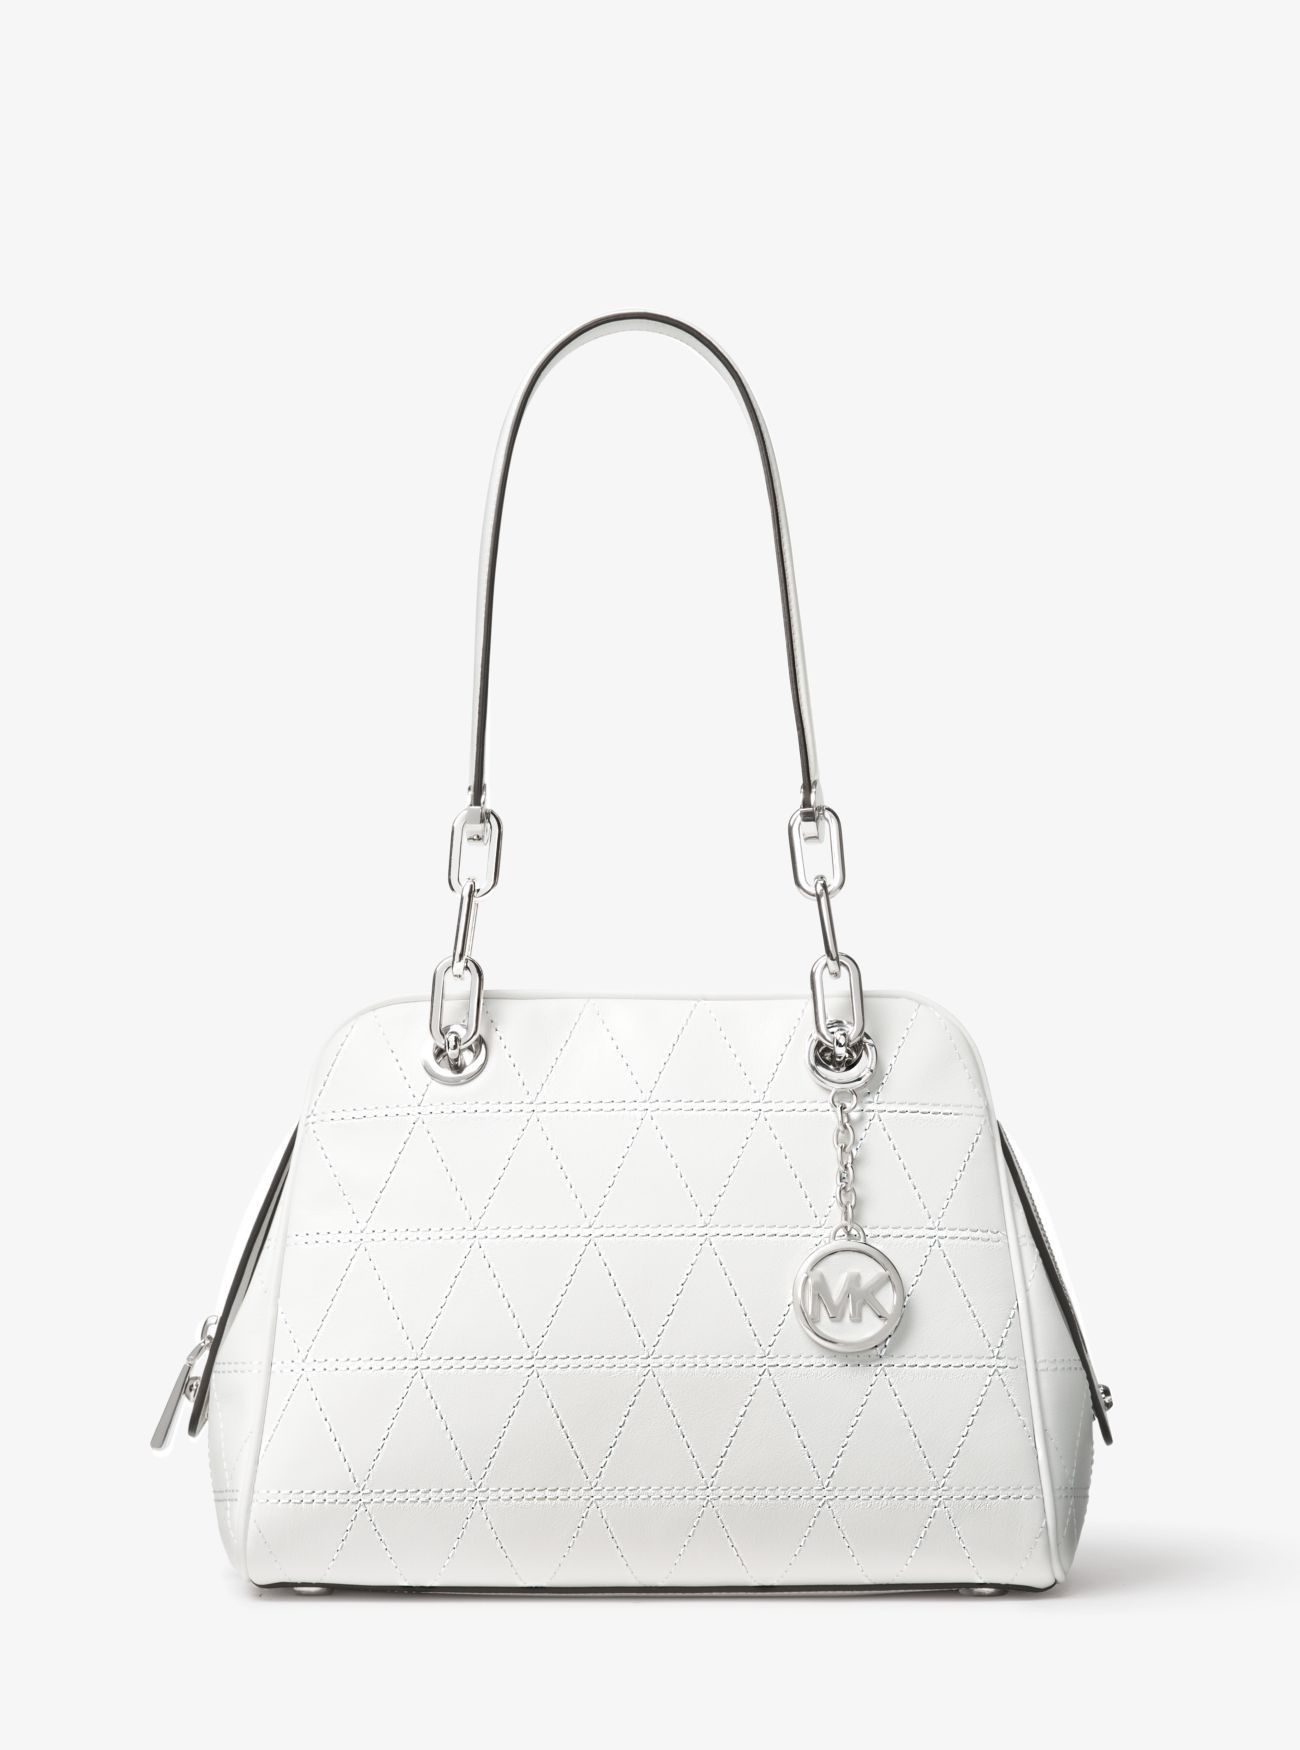 151b69a1662e Sale Michael Kors Optic White Venice Quilted Leather Satchel Outlet ...